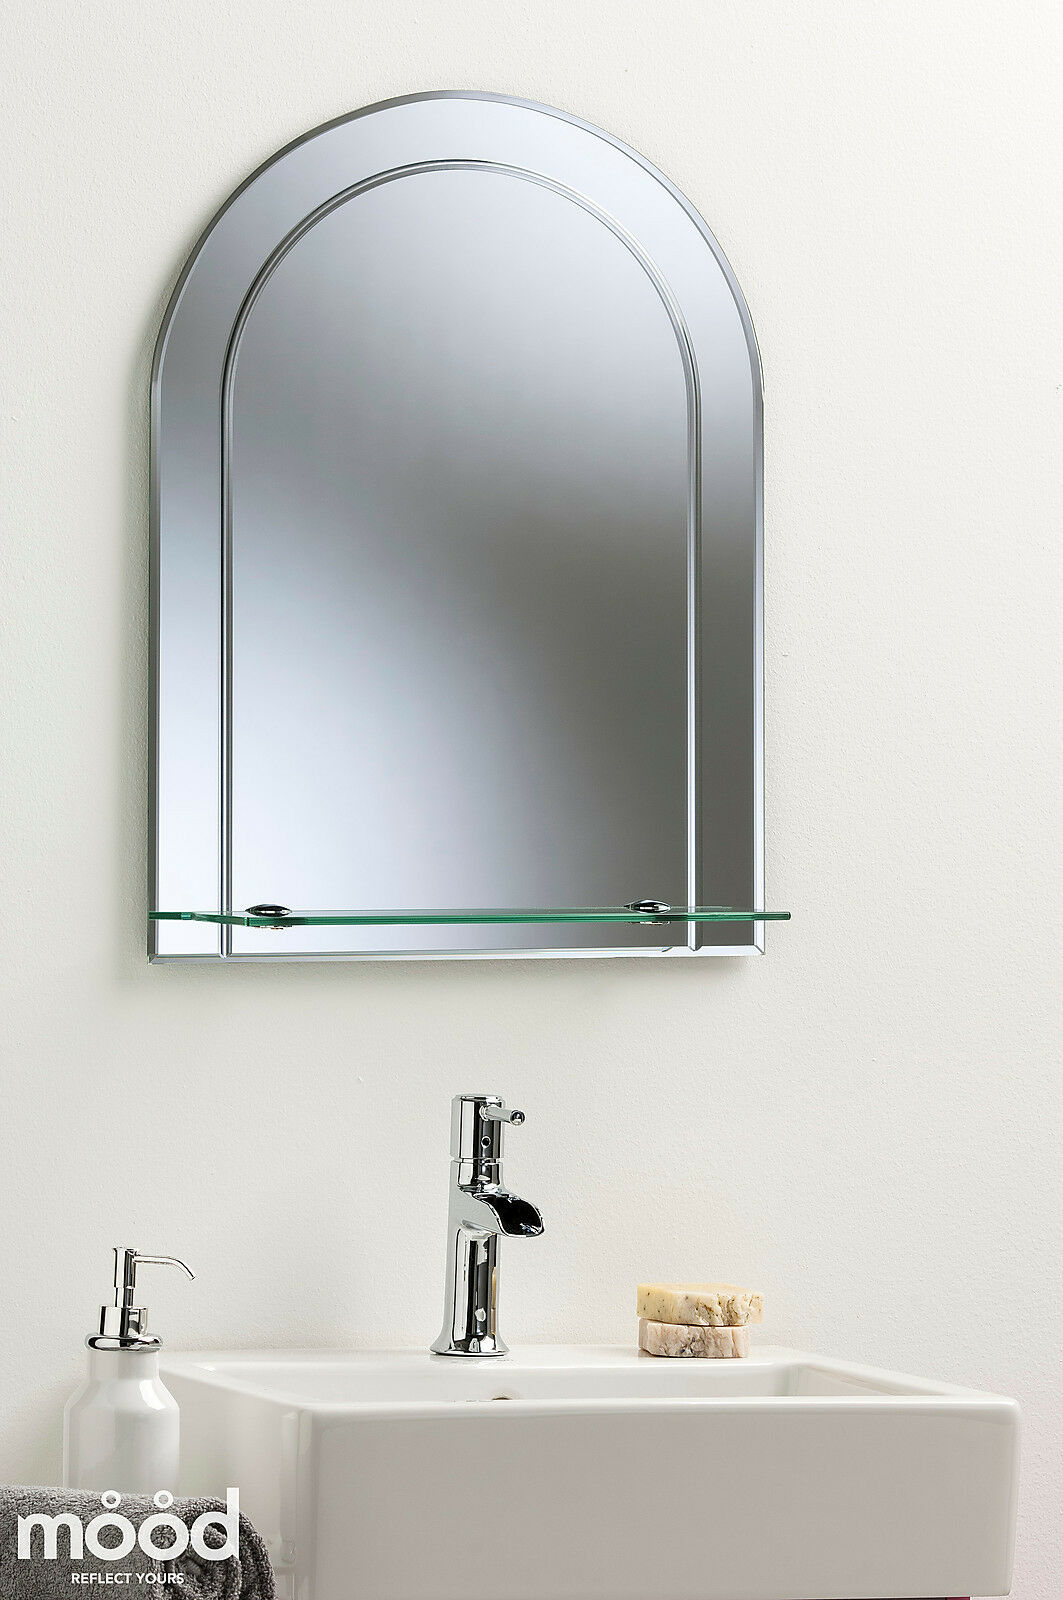 Pretty arch bathroom wall mirror modern stylish with shelf etched detail plai ebay Neue design bathroom mirror